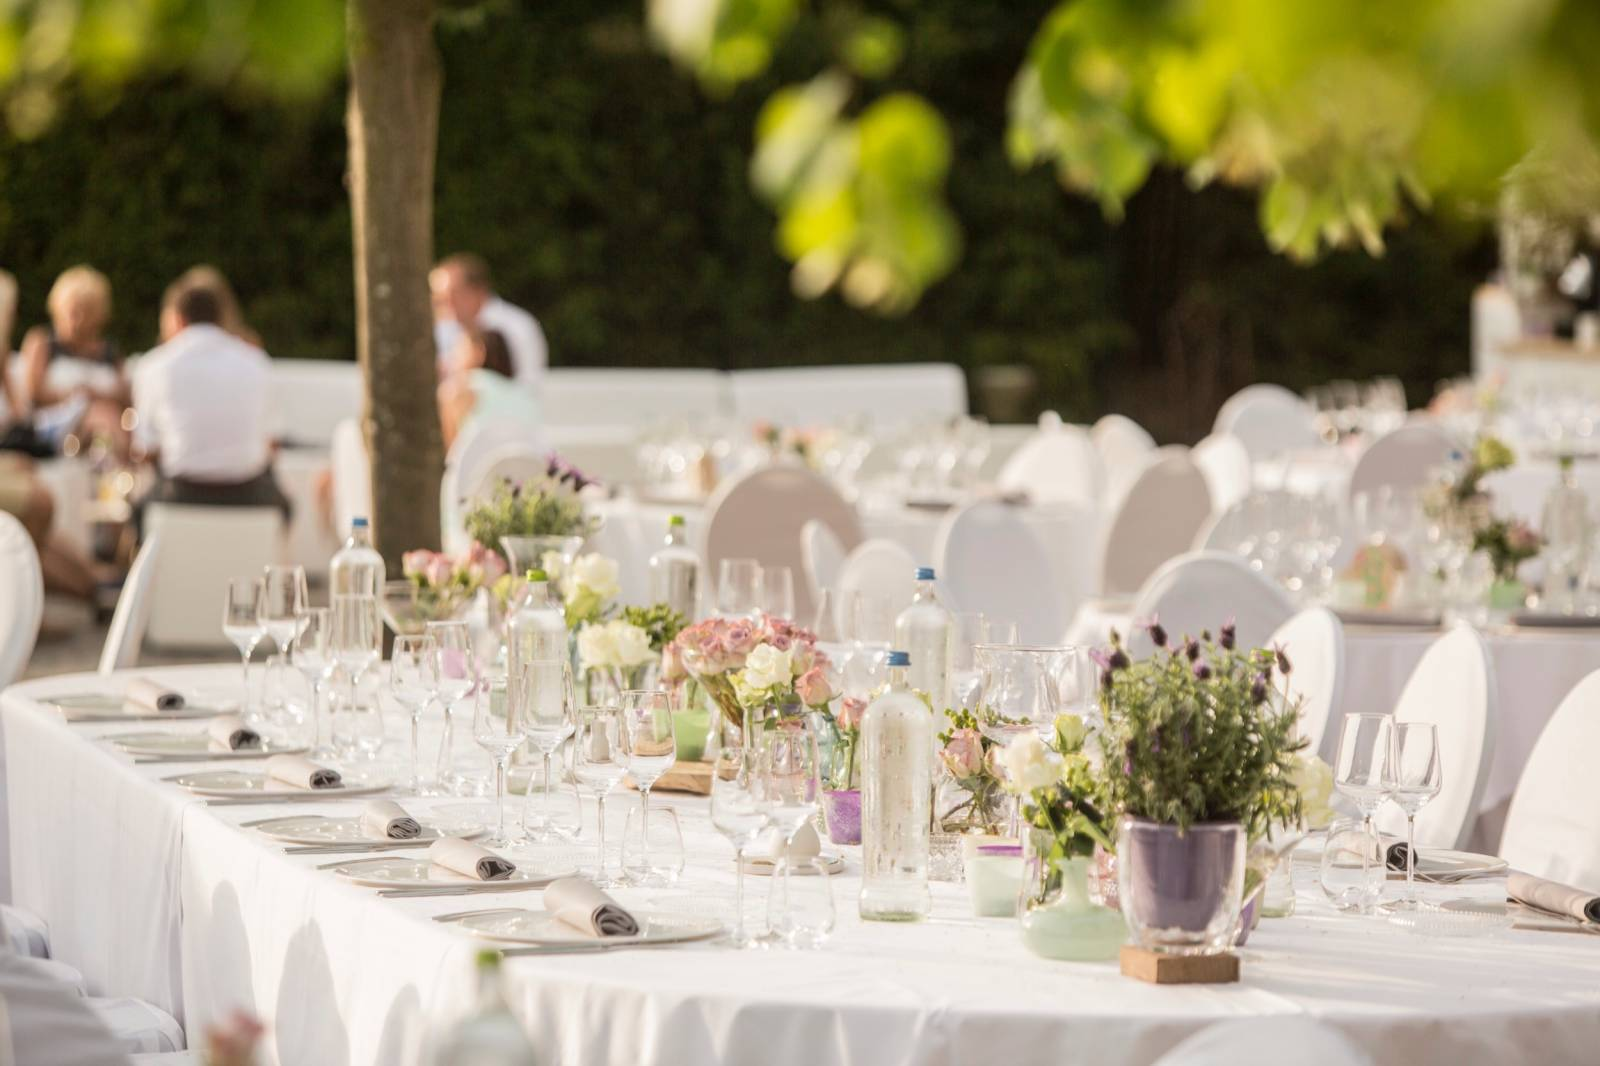 J&M Catering - Cateraar - Traiteur - House of Events - 5